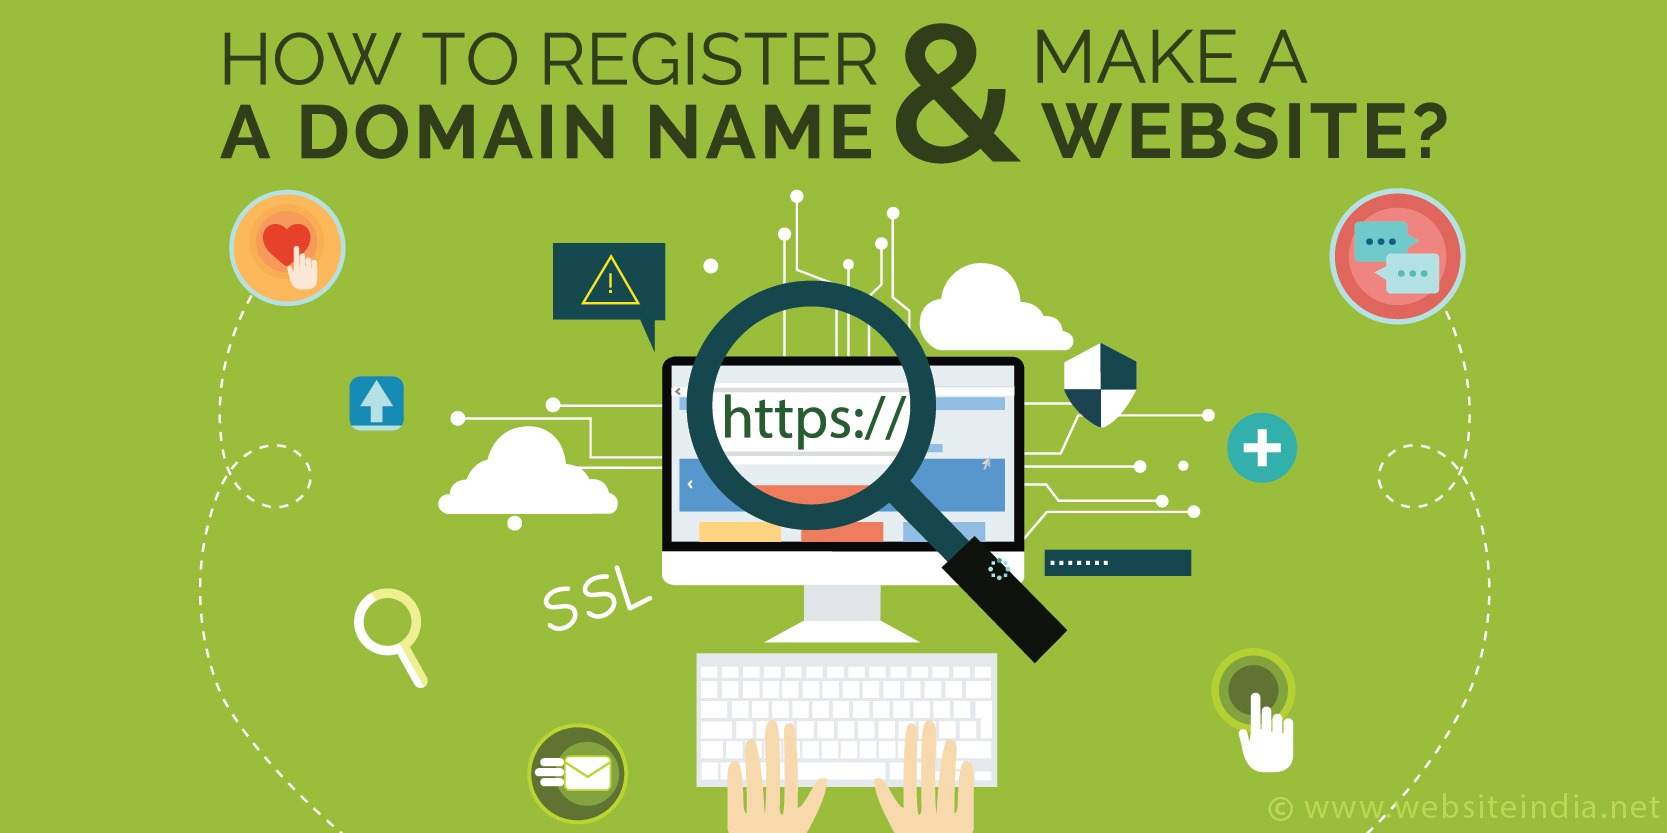 How to Register a Domain Name & Make a Website